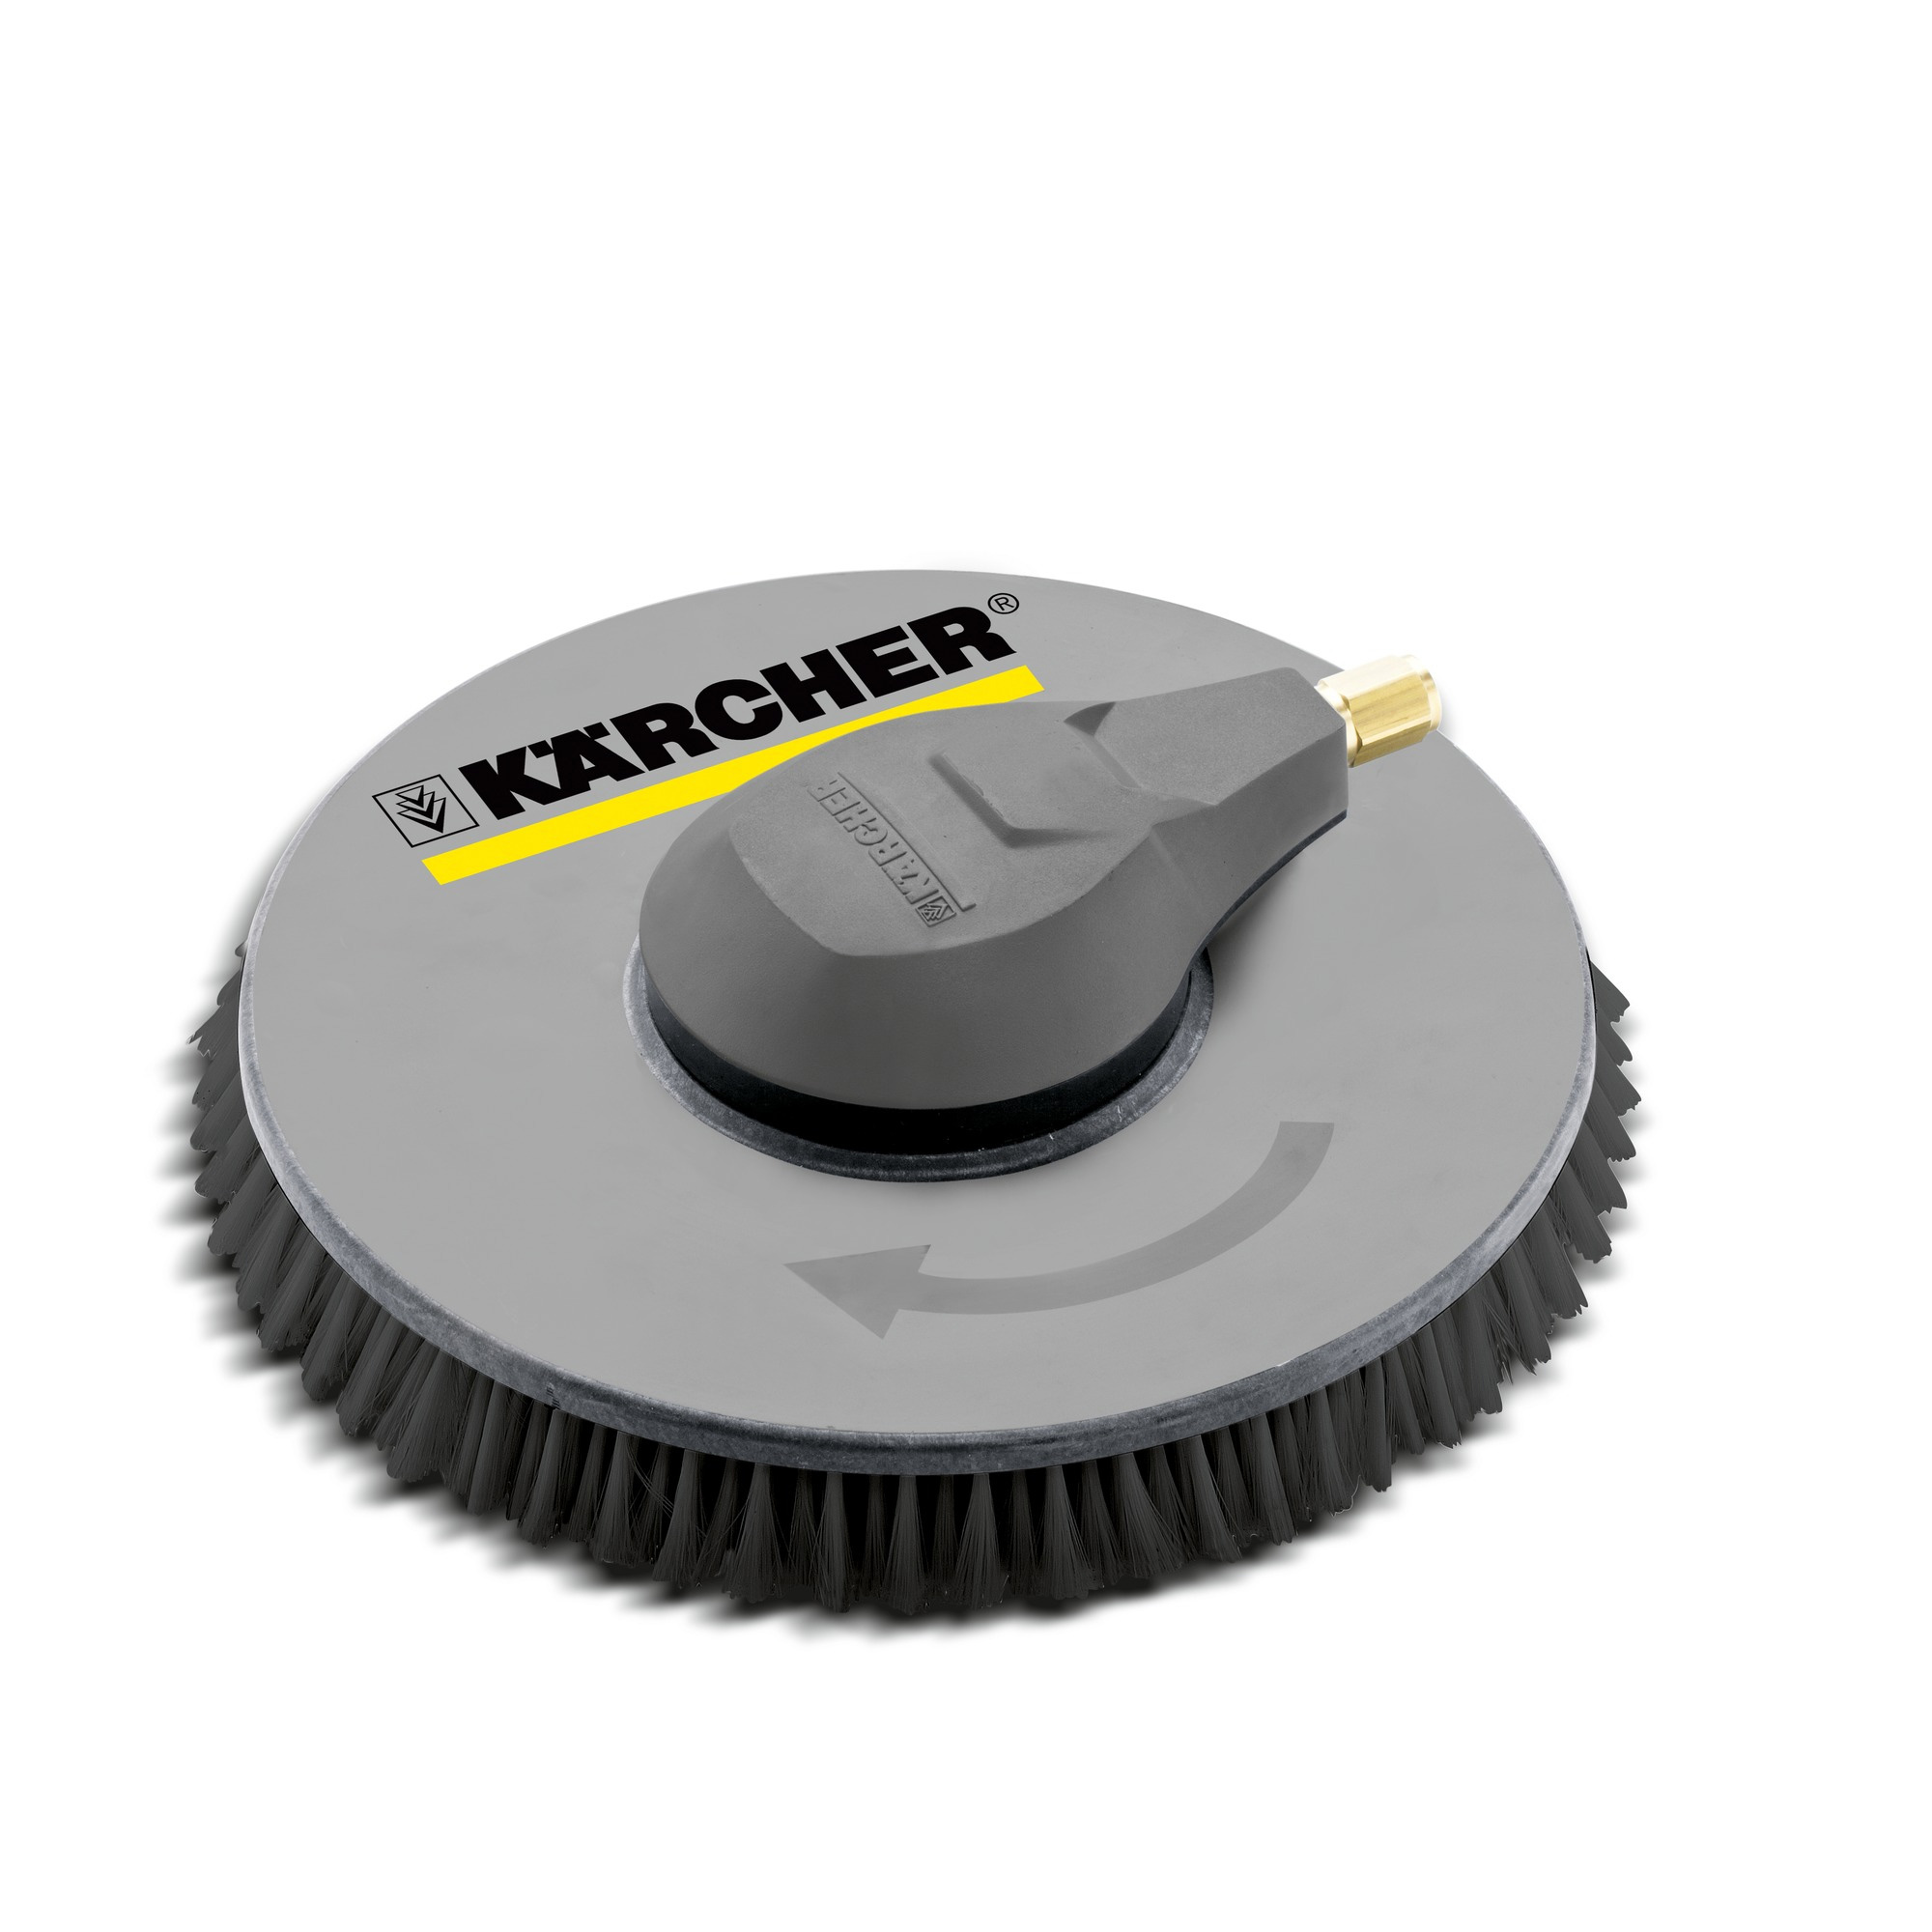 Karcher Brush iSolar 400 700-1000 LH